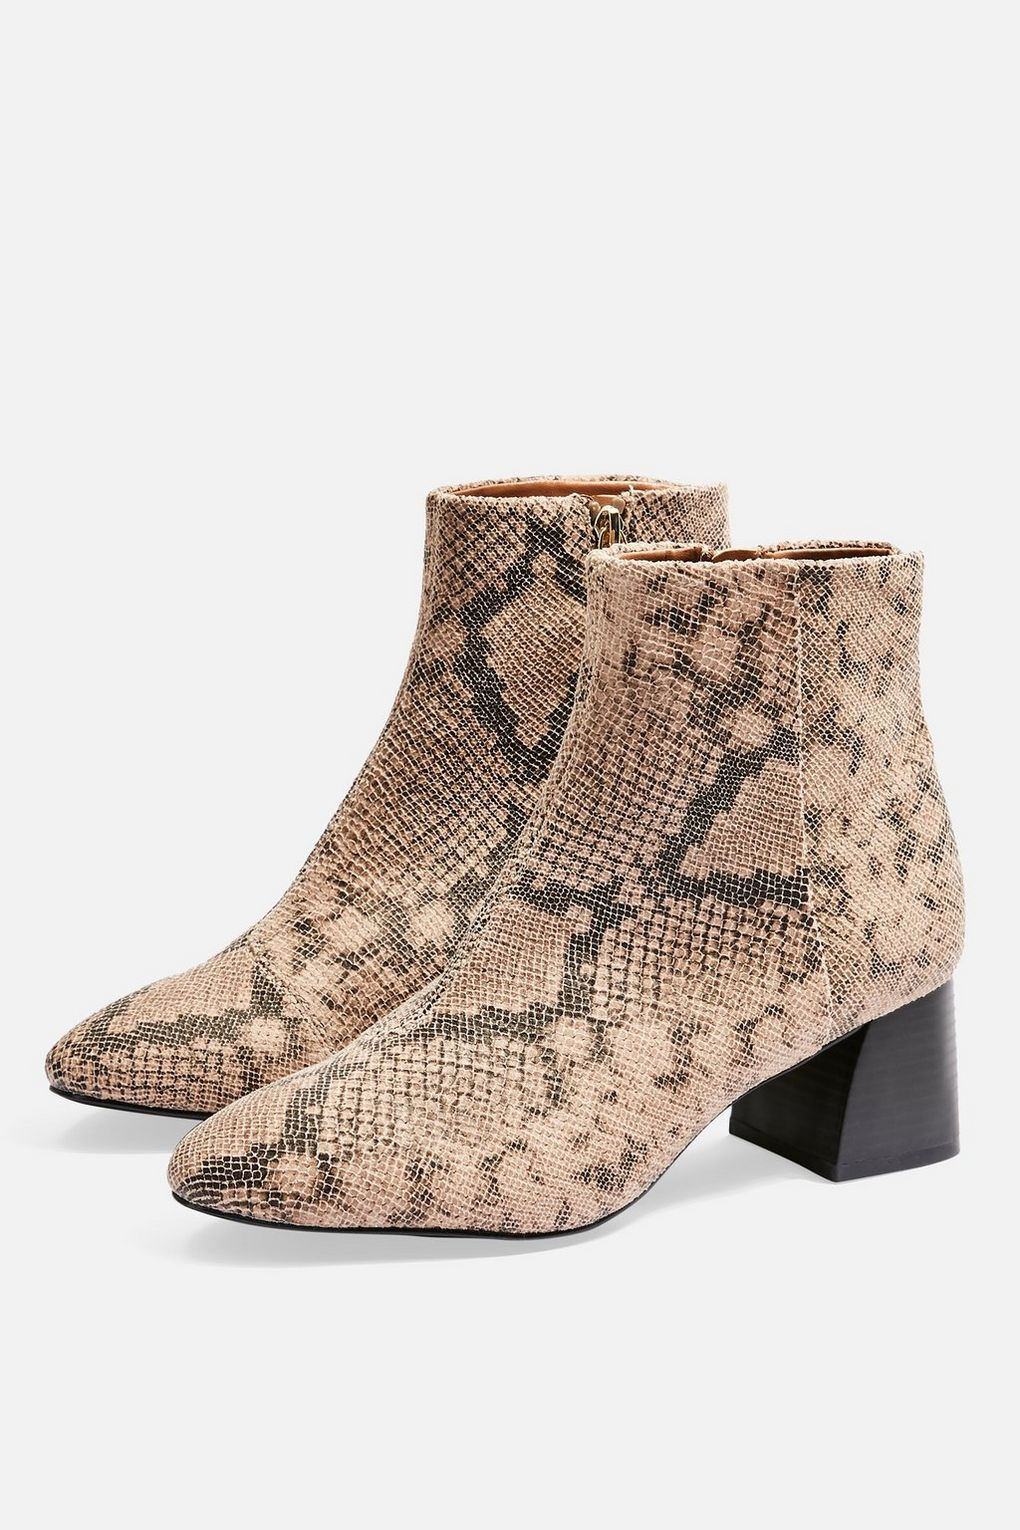 27ae4f26adb8 Babe Block Heel Boots - Trend: Animal Print - Clothing - Topshop ...